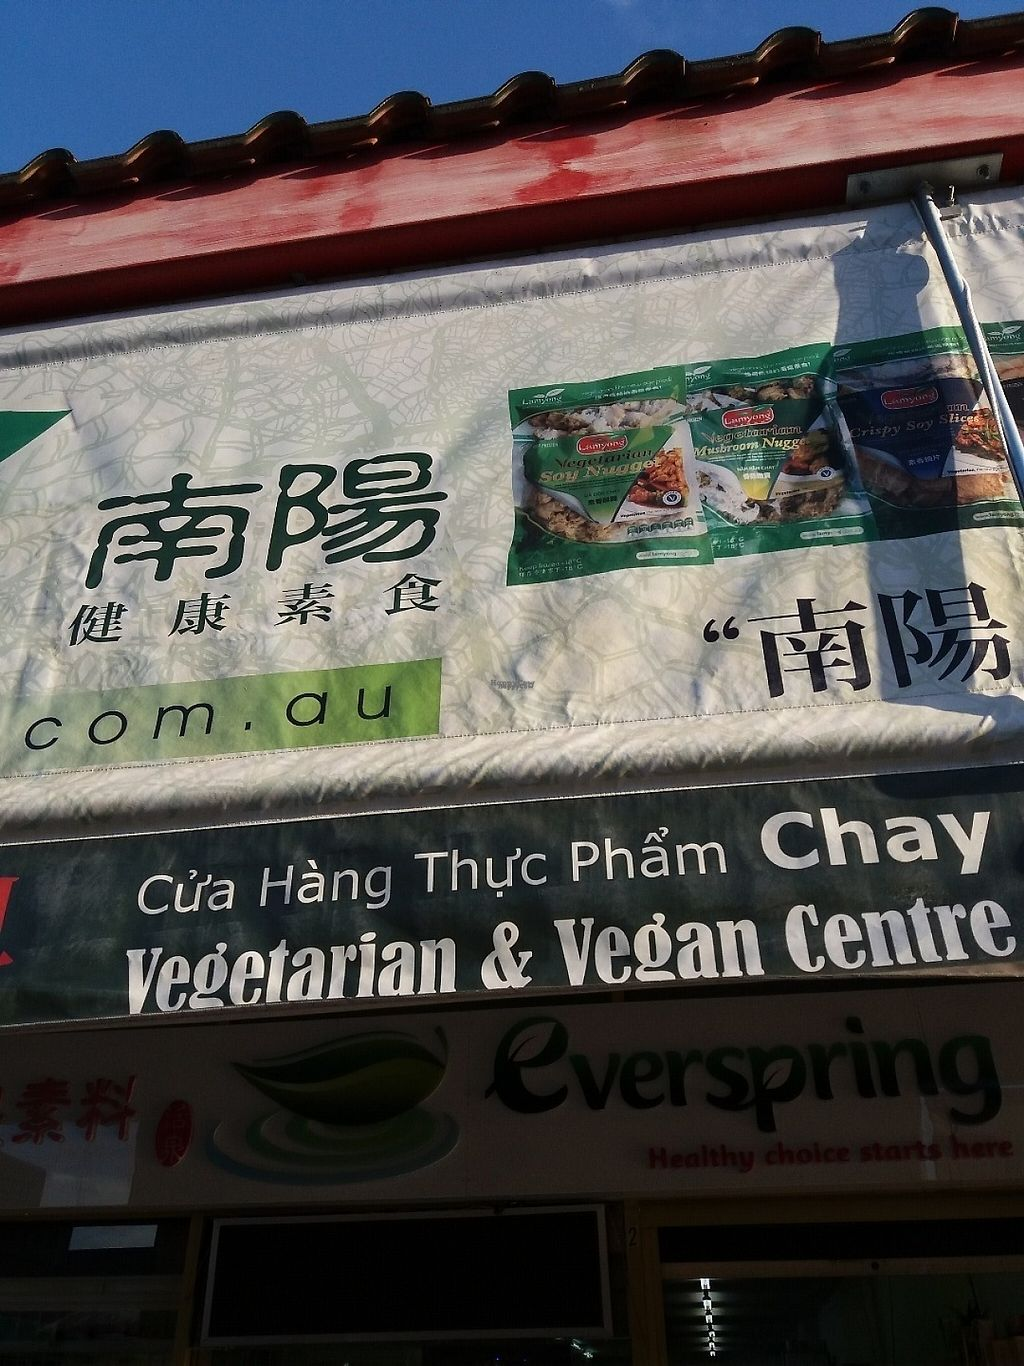 """Photo of Everspring Health Food  by <a href=""""/members/profile/veganvirtues"""">veganvirtues</a> <br/>Entrance showing in a number of languages and that great word Vegan <br/> April 19, 2017  - <a href='/contact/abuse/image/90725/250063'>Report</a>"""